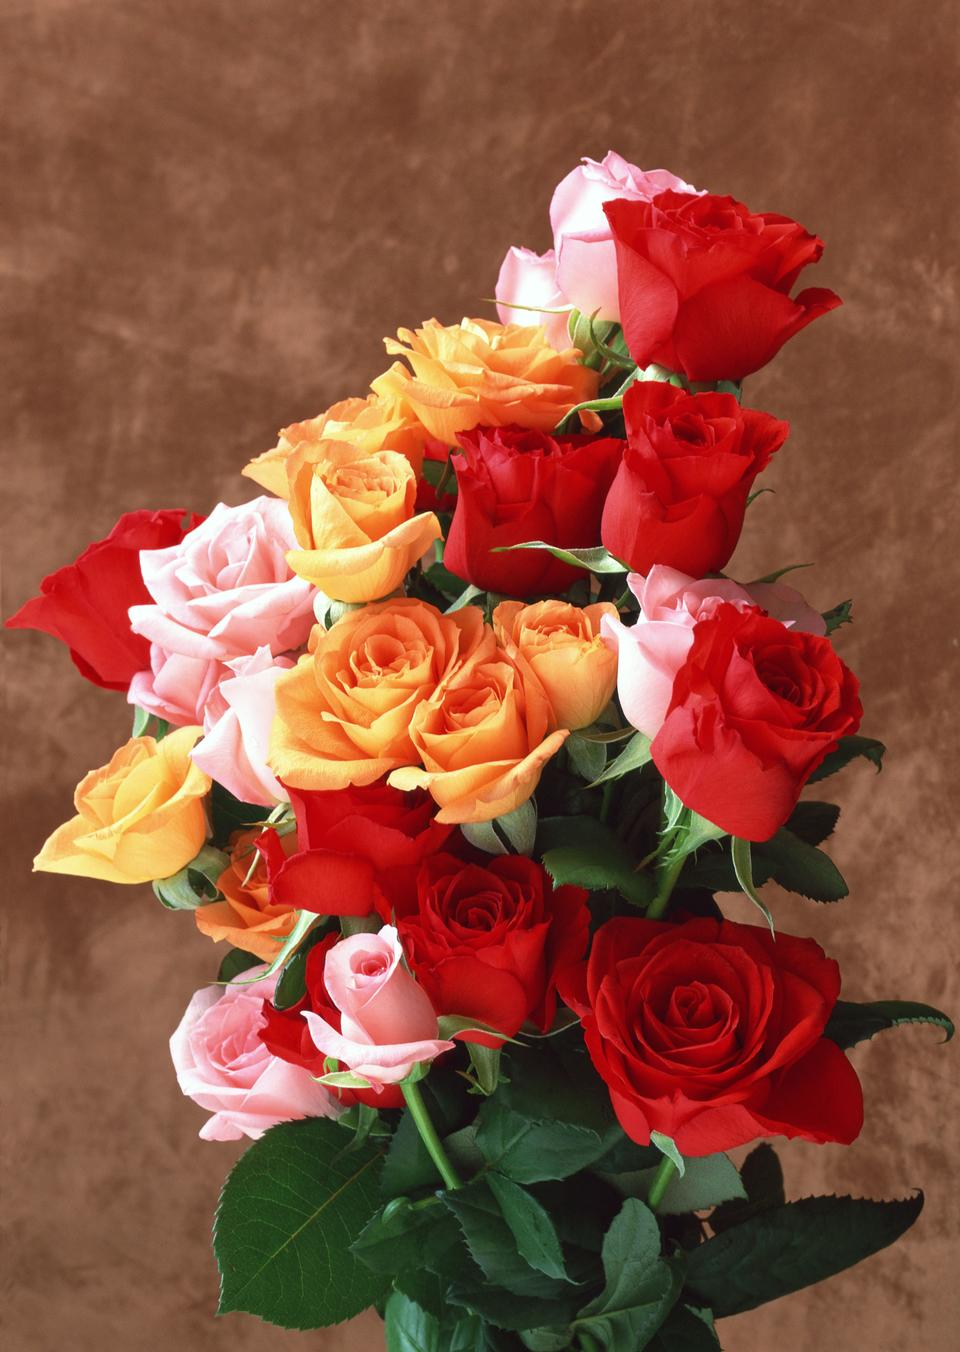 Romantic bouquet of three brightly colored roses in orange, pink